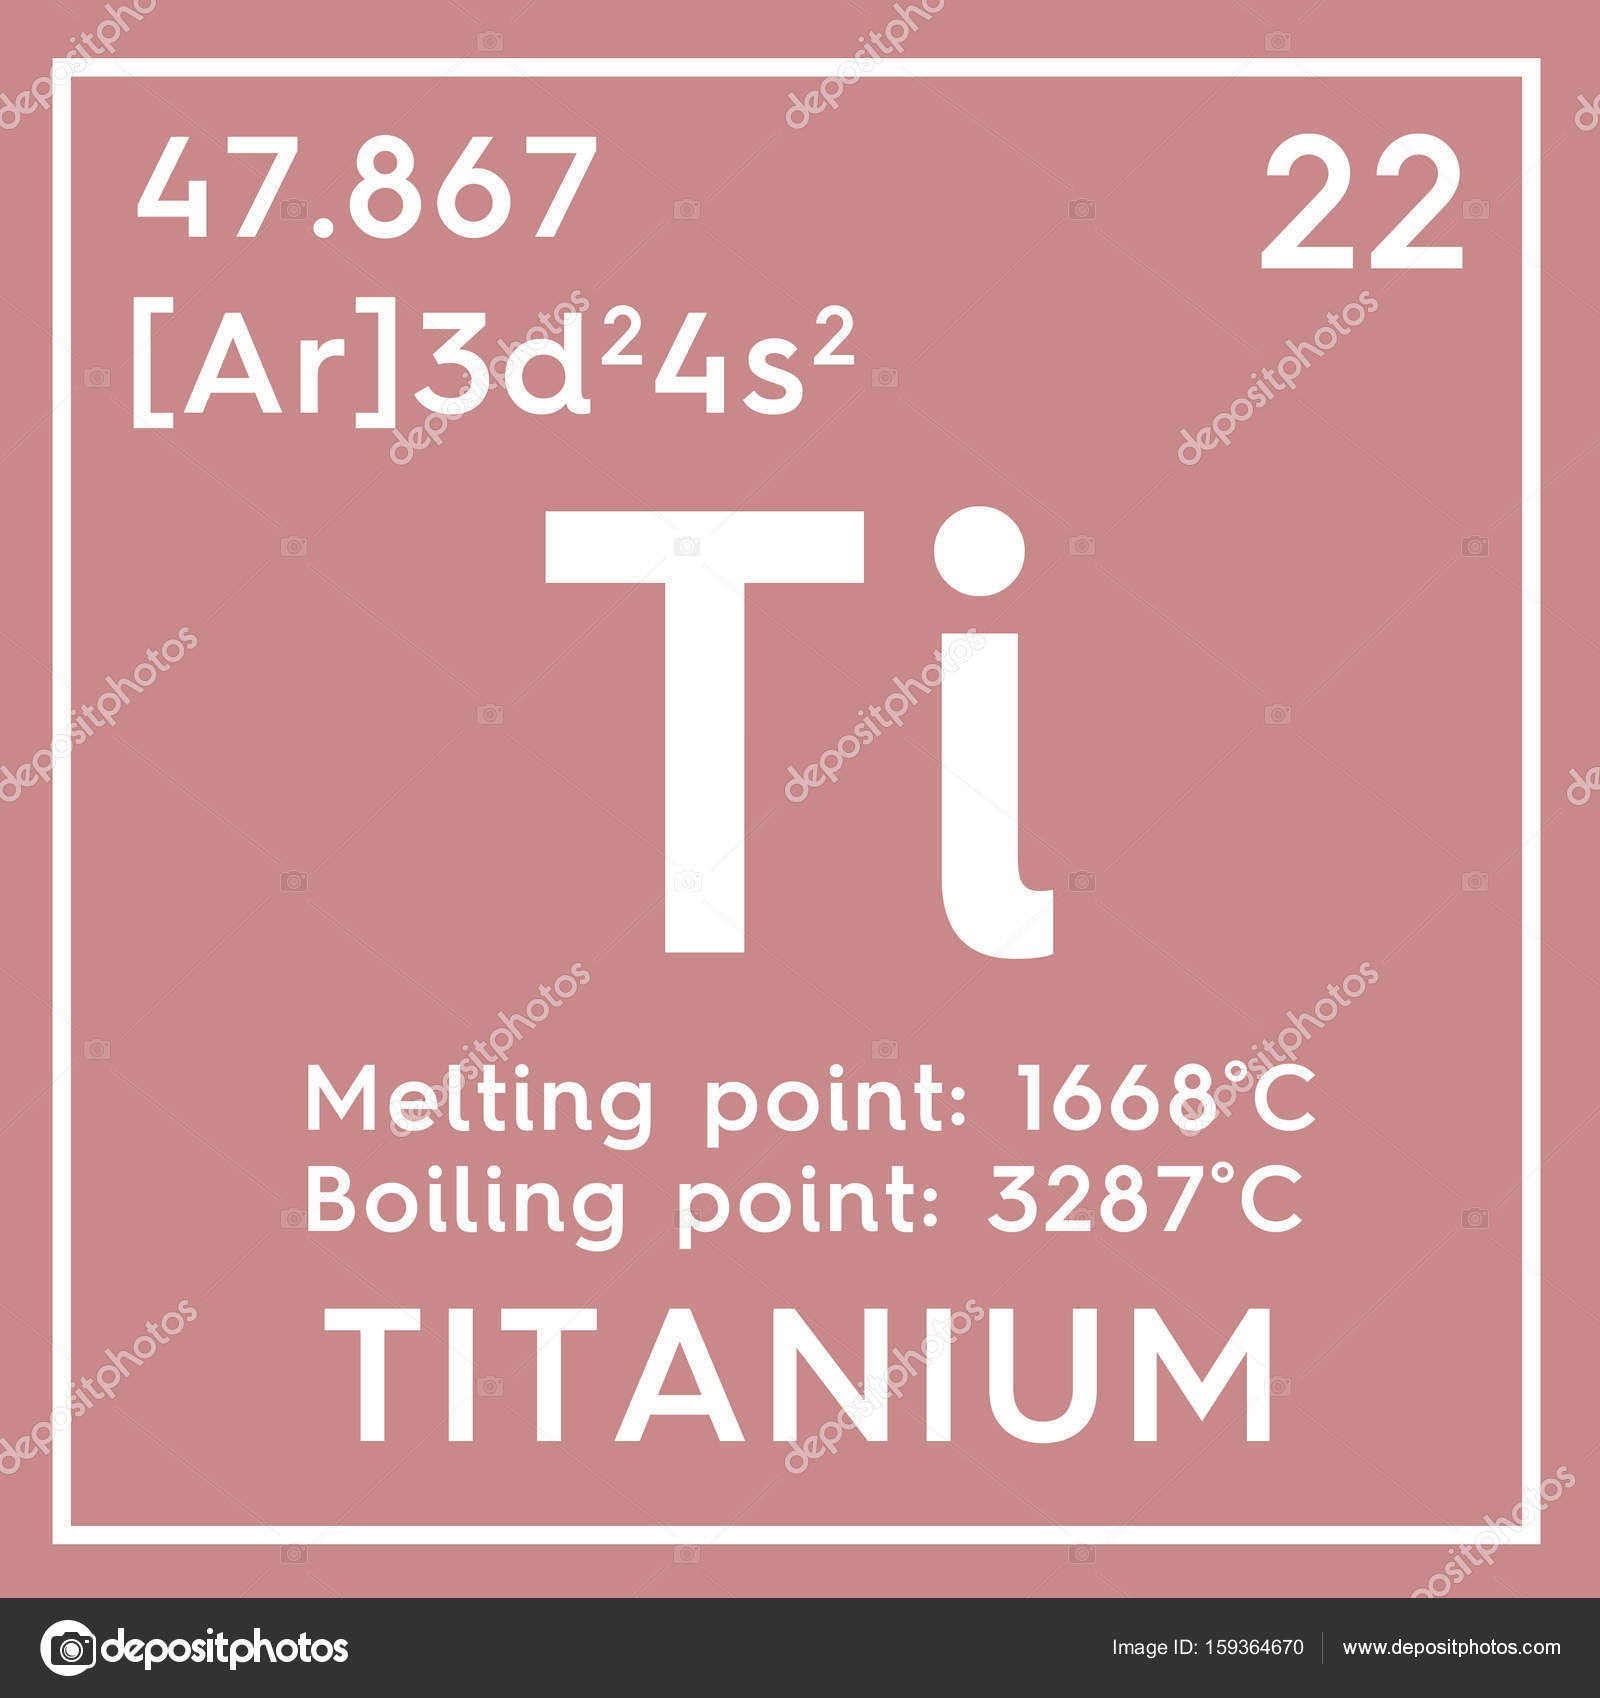 Titanium. Transition Metals. Chemical Element Of Mendeleevu0027s Periodic Table.  Titanium In Square Cube Creative Concept. U2014 Photo By Sanches812